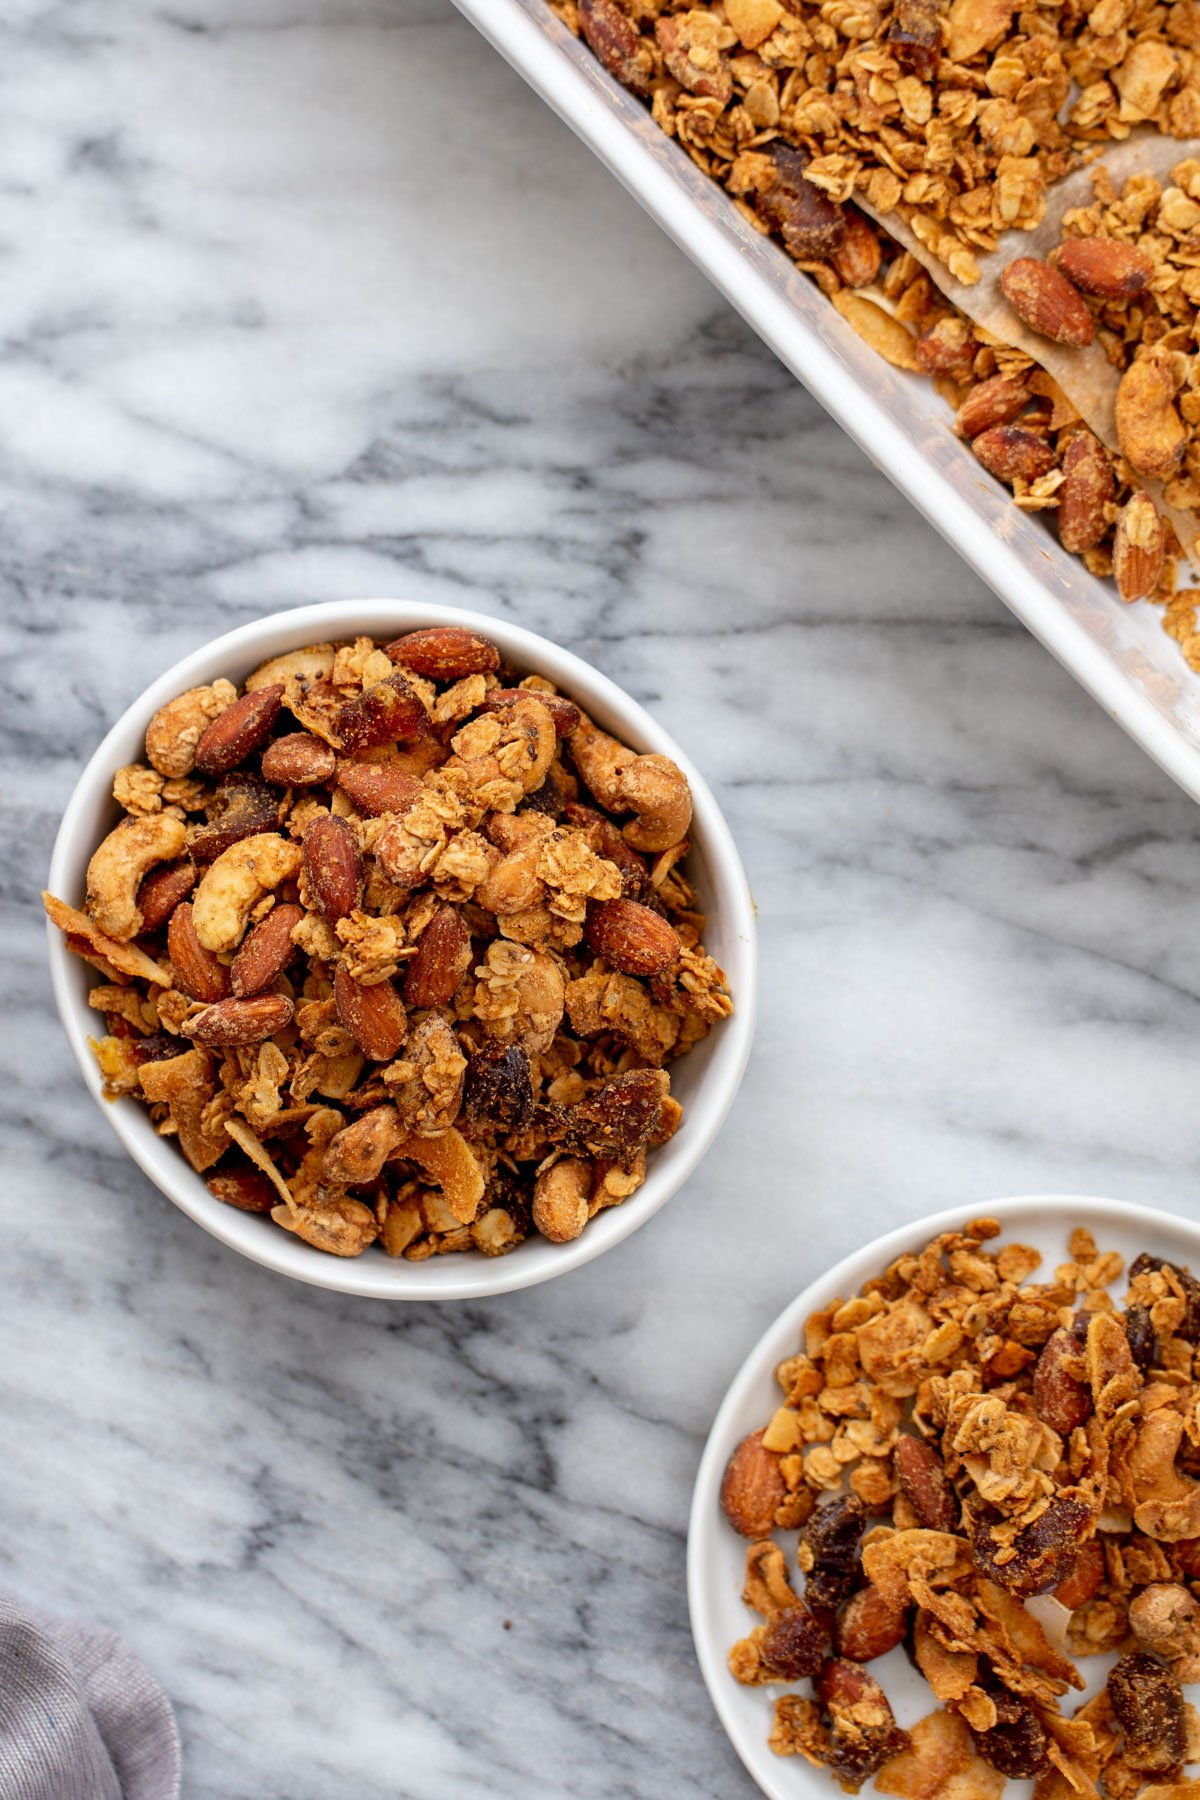 two small bowls of vegan almond coconut granola on a marble countertop